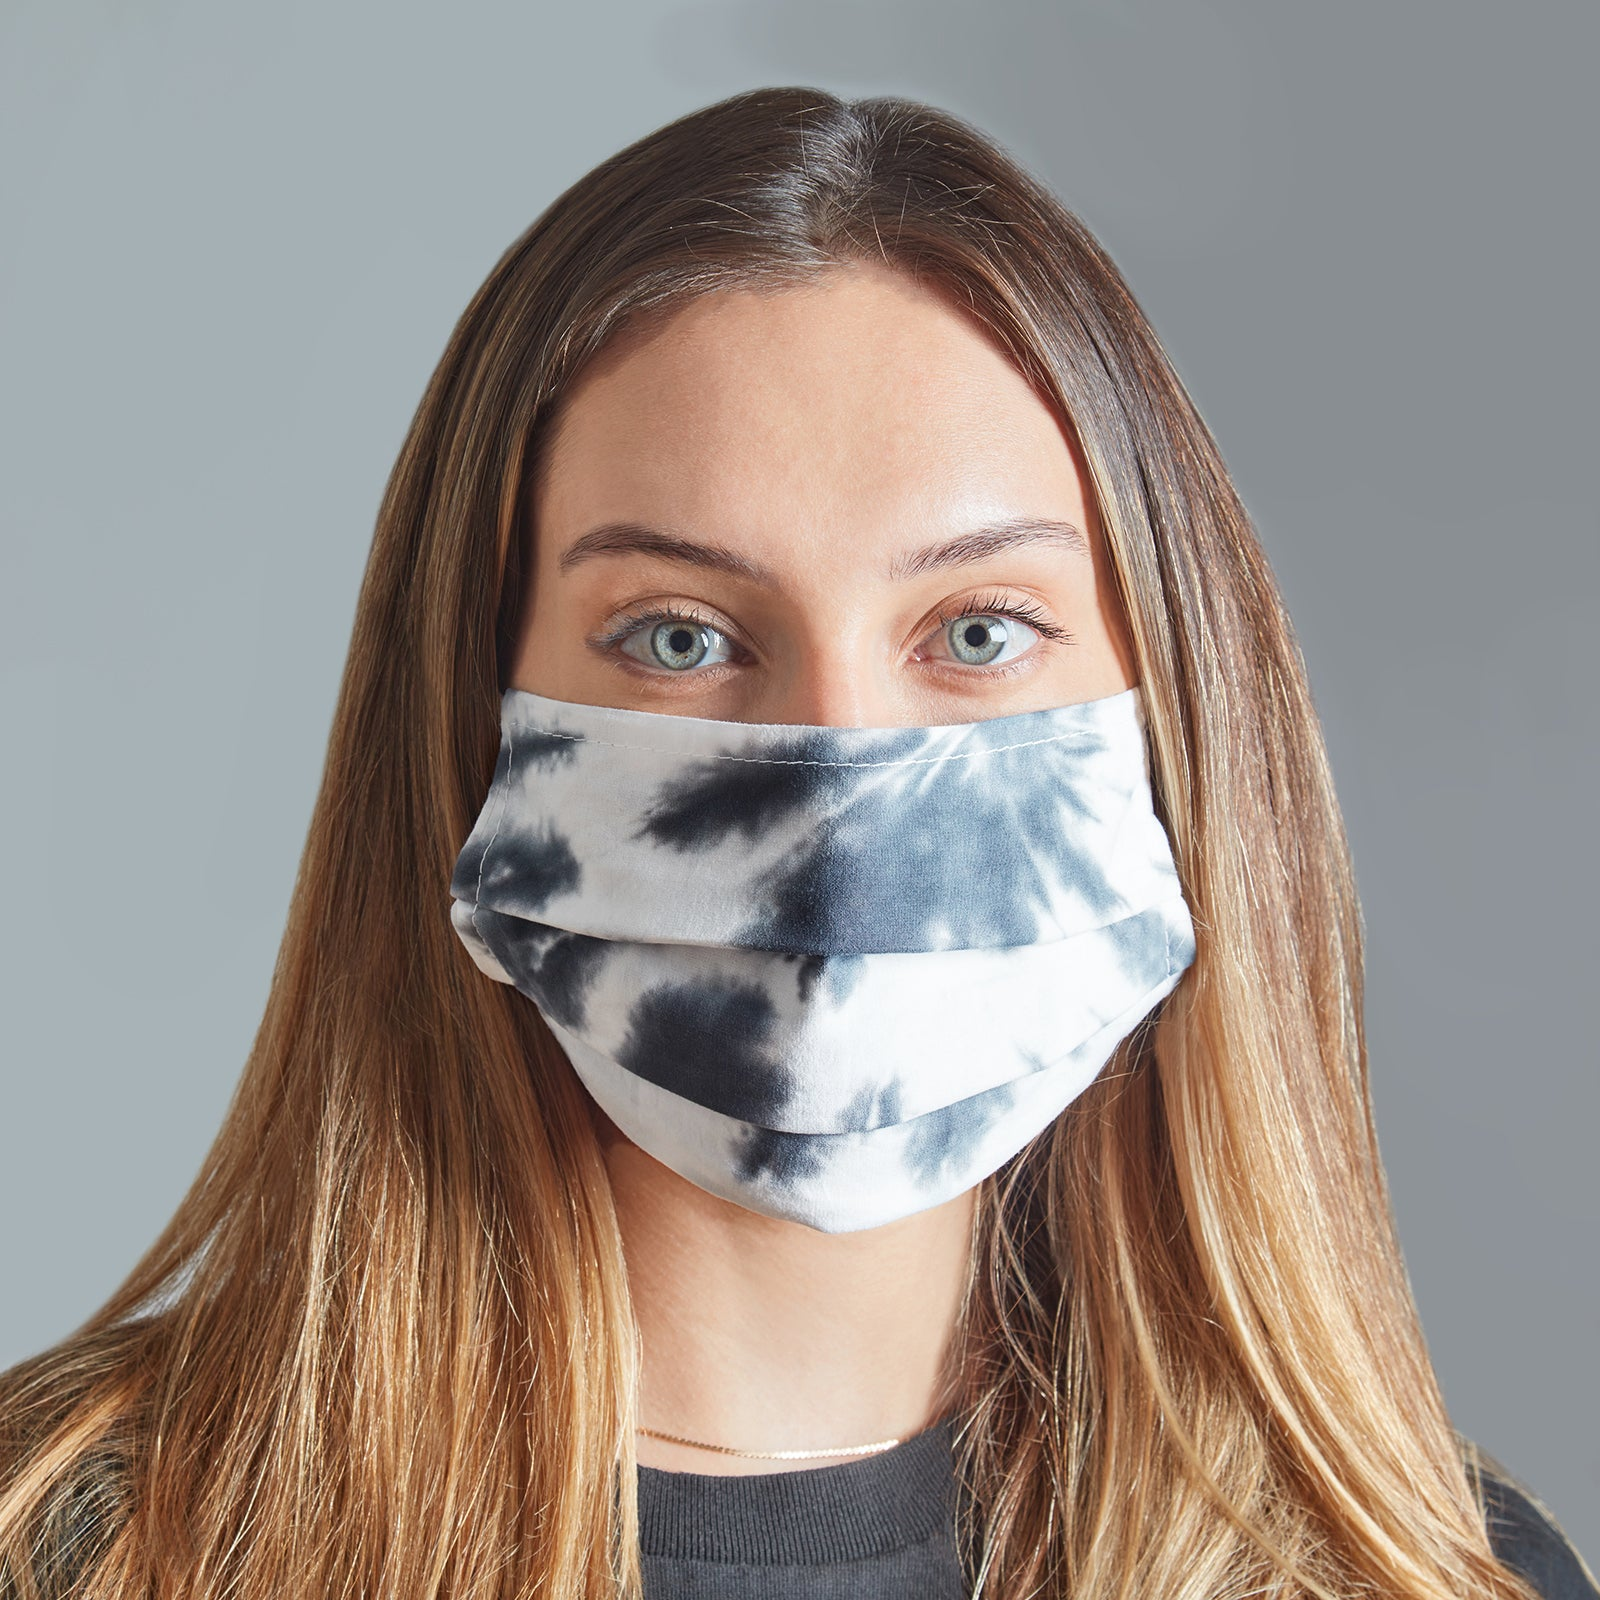 Fraction LA Tie Dye Face Mask - Chocolate, Burgundy & Ice Blue - Accessories - Broken English Jewelry